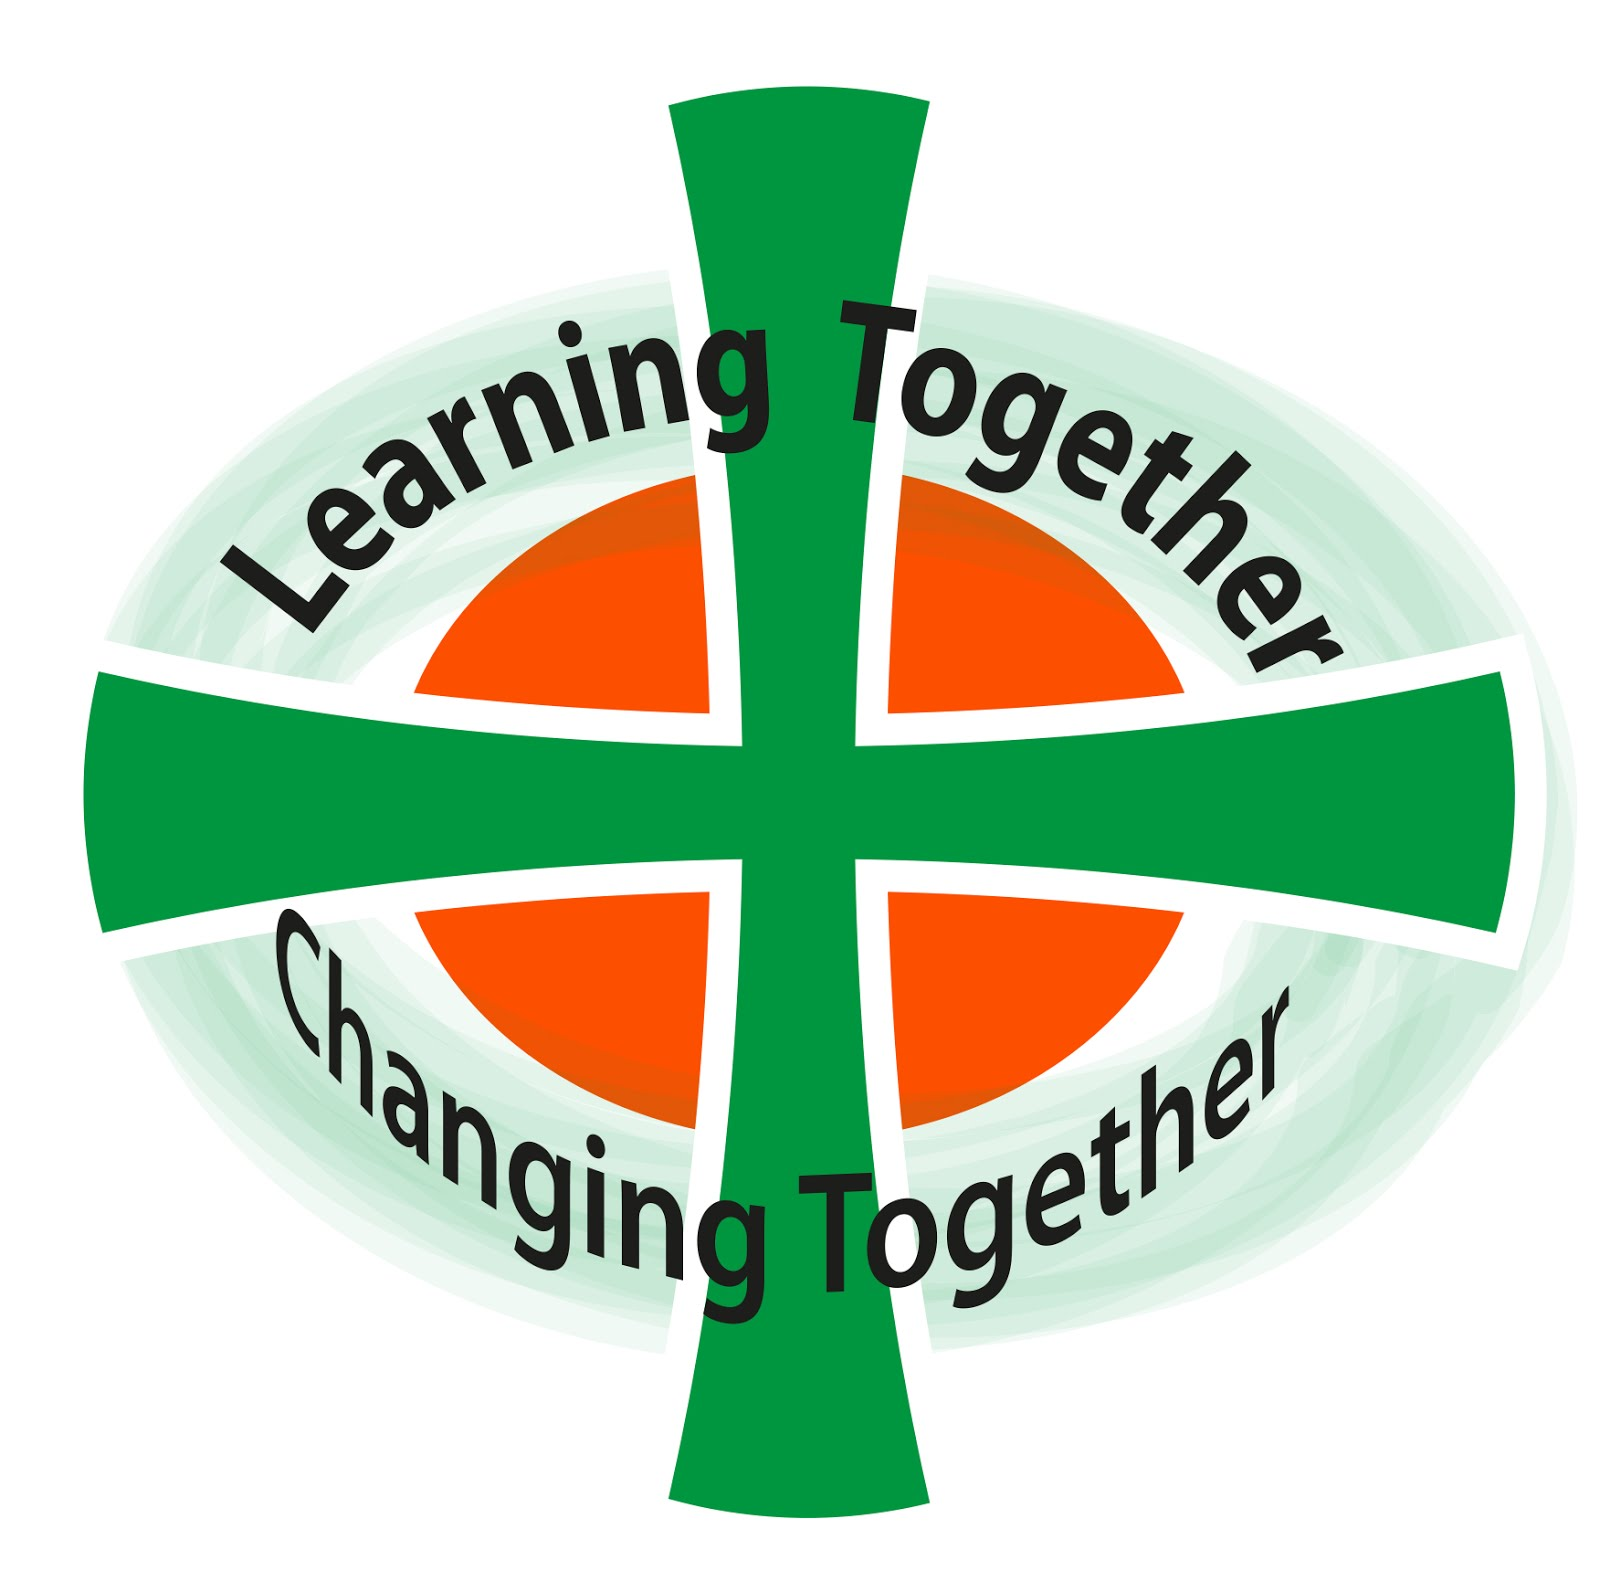 Learning together, Changing together